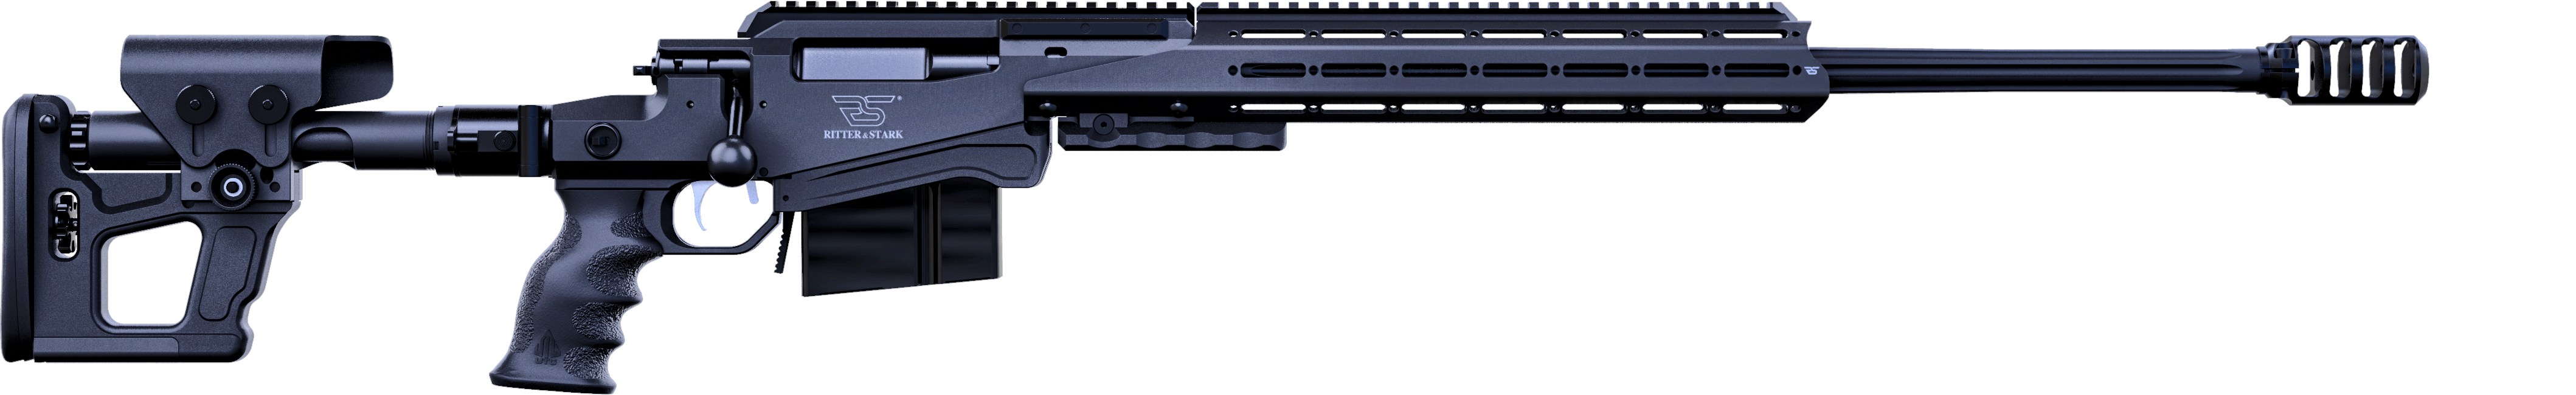 Ritter & Stark SX-1 Modular Tactical Rifle in .338